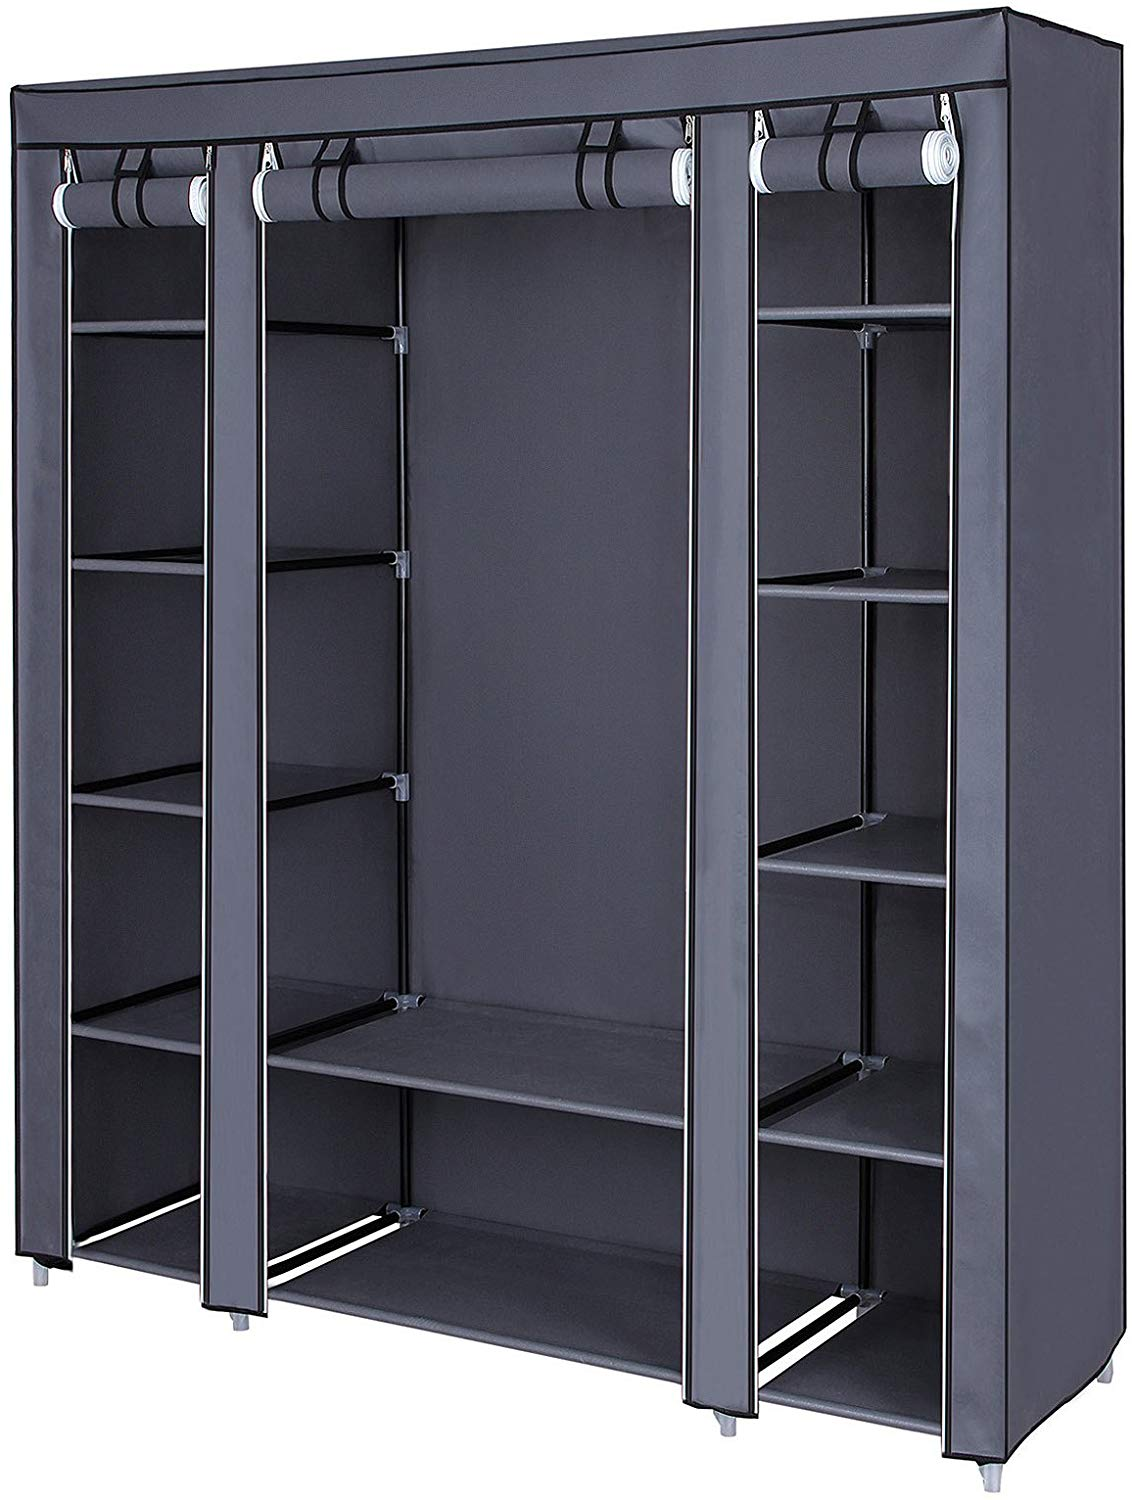 SONGMICS 59 Inch Closet Organizer Wardrobe Closet Portable Closet shelves, Closet Storage Organizer with Non-woven Fabric, Quick and Easy to Assemble, Extra Strong and Durable